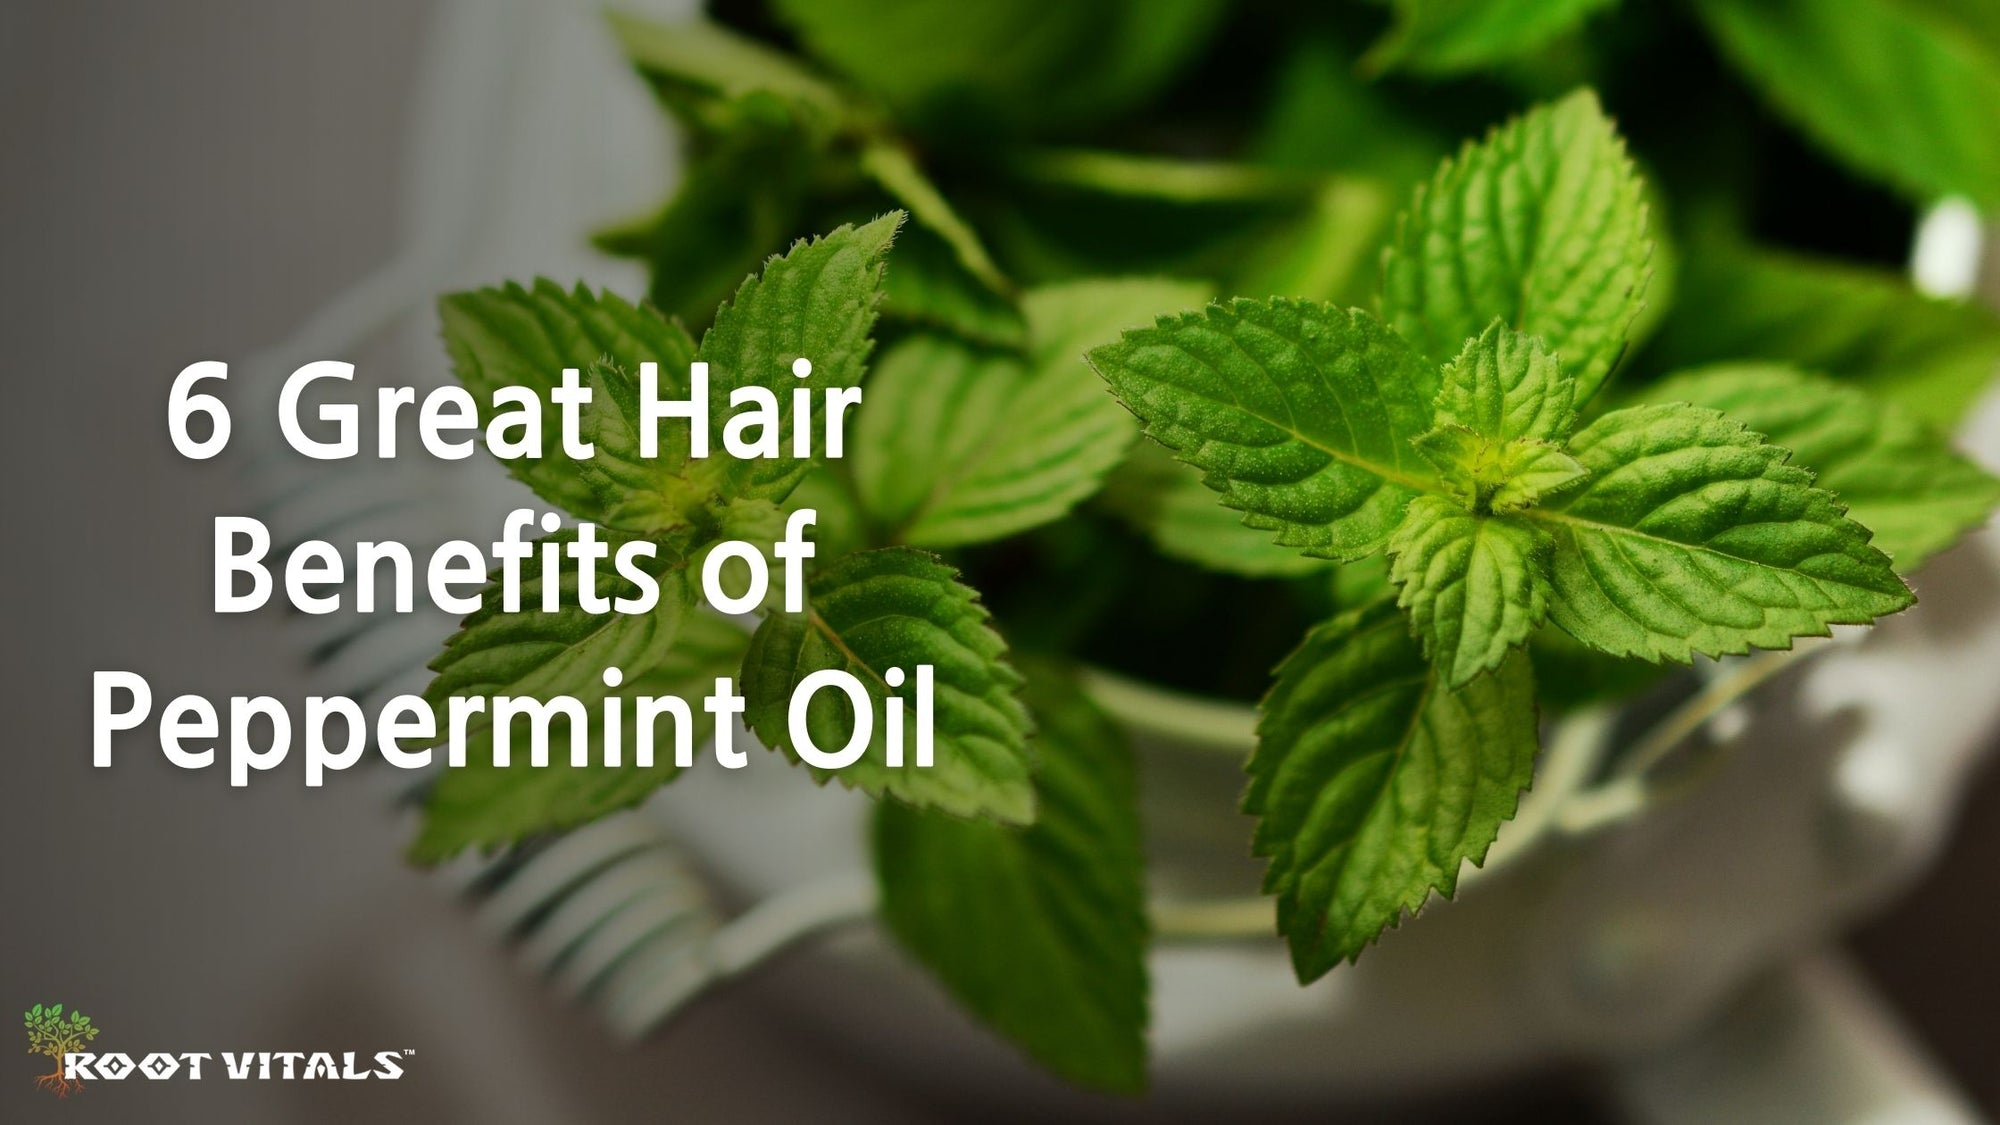 Great Hair Benefits of Peppermint Oil